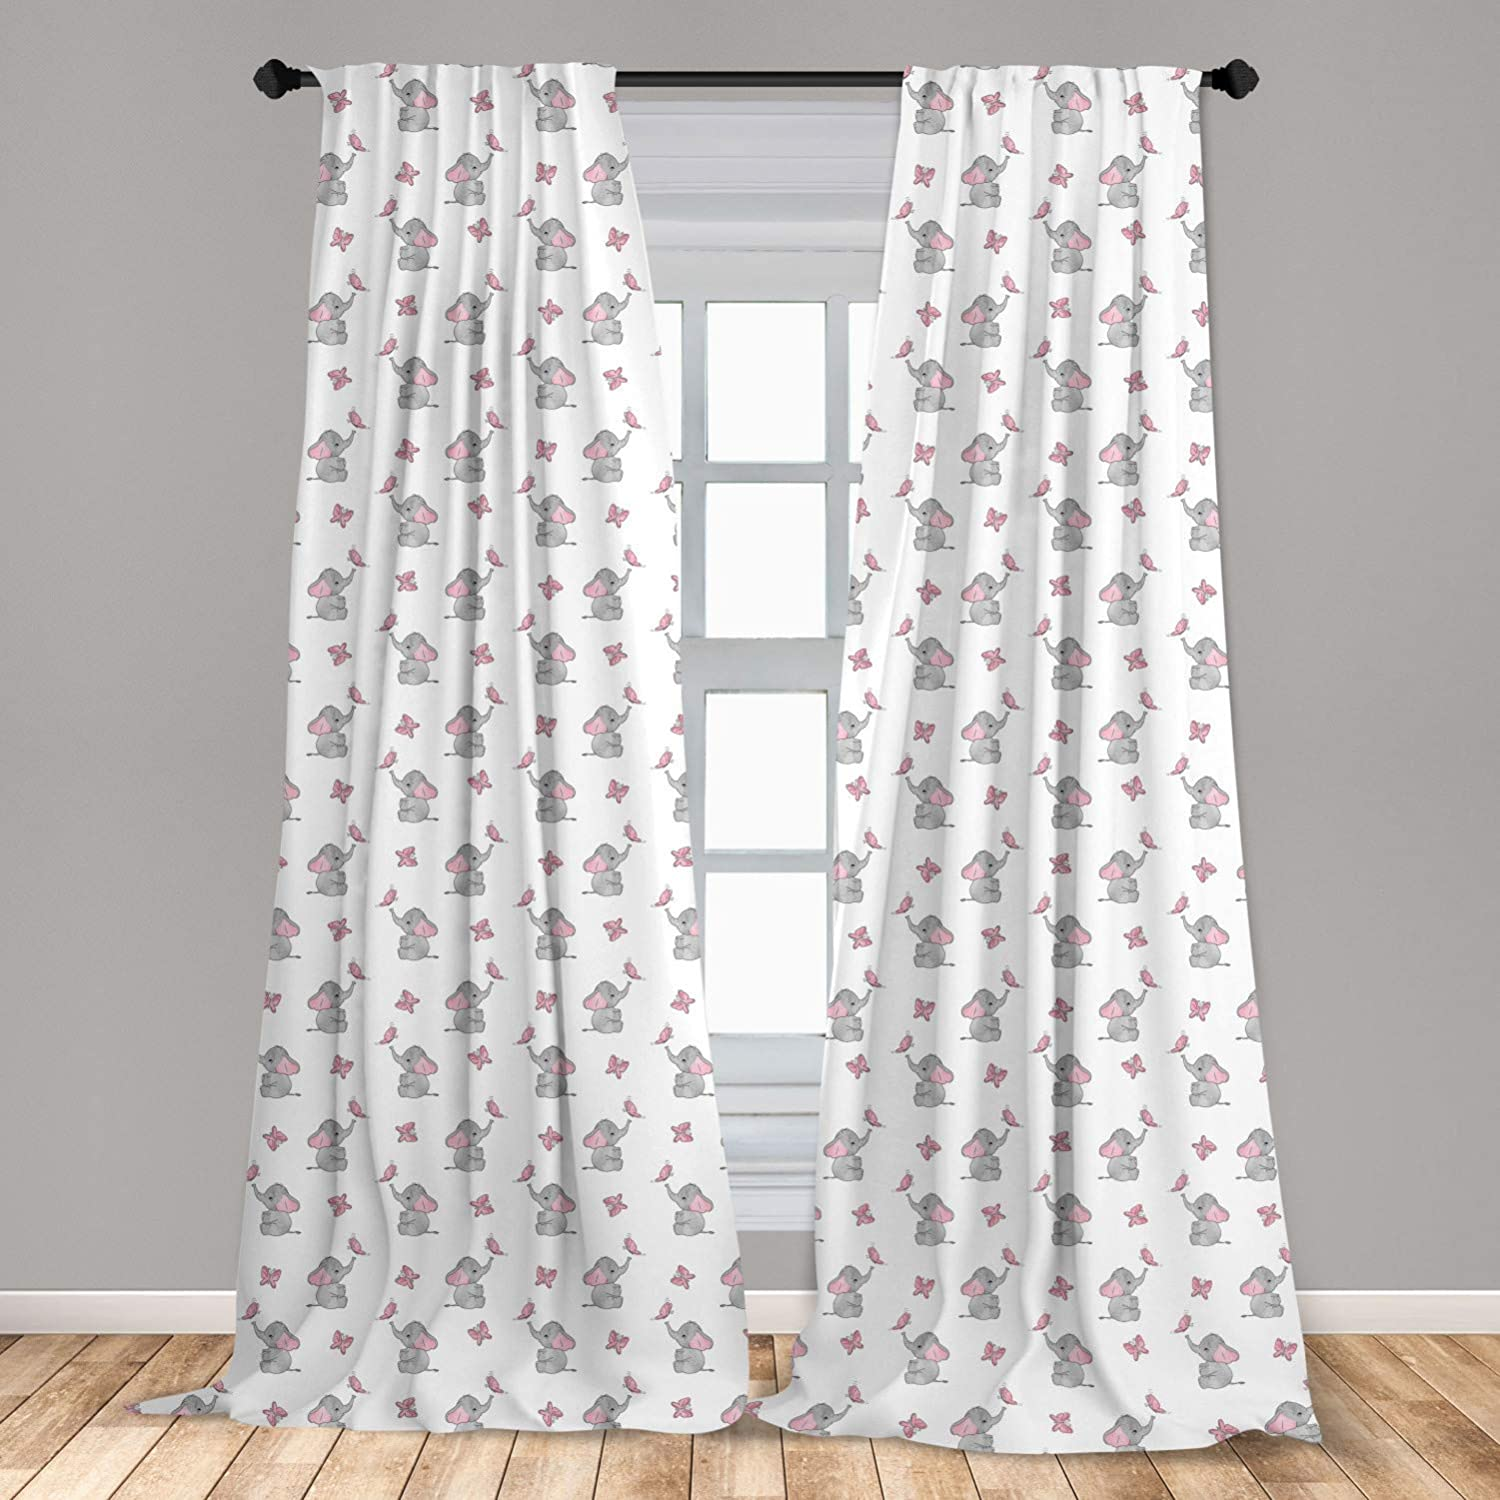 """Ambesonne Elephant Nursery Curtains, Baby Elephants Playing with Butterflies Design Pattern, Window Treatments 2 Panel Set for Living Room Bedroom Decor, 56"""" x 63"""", Grey Pink"""